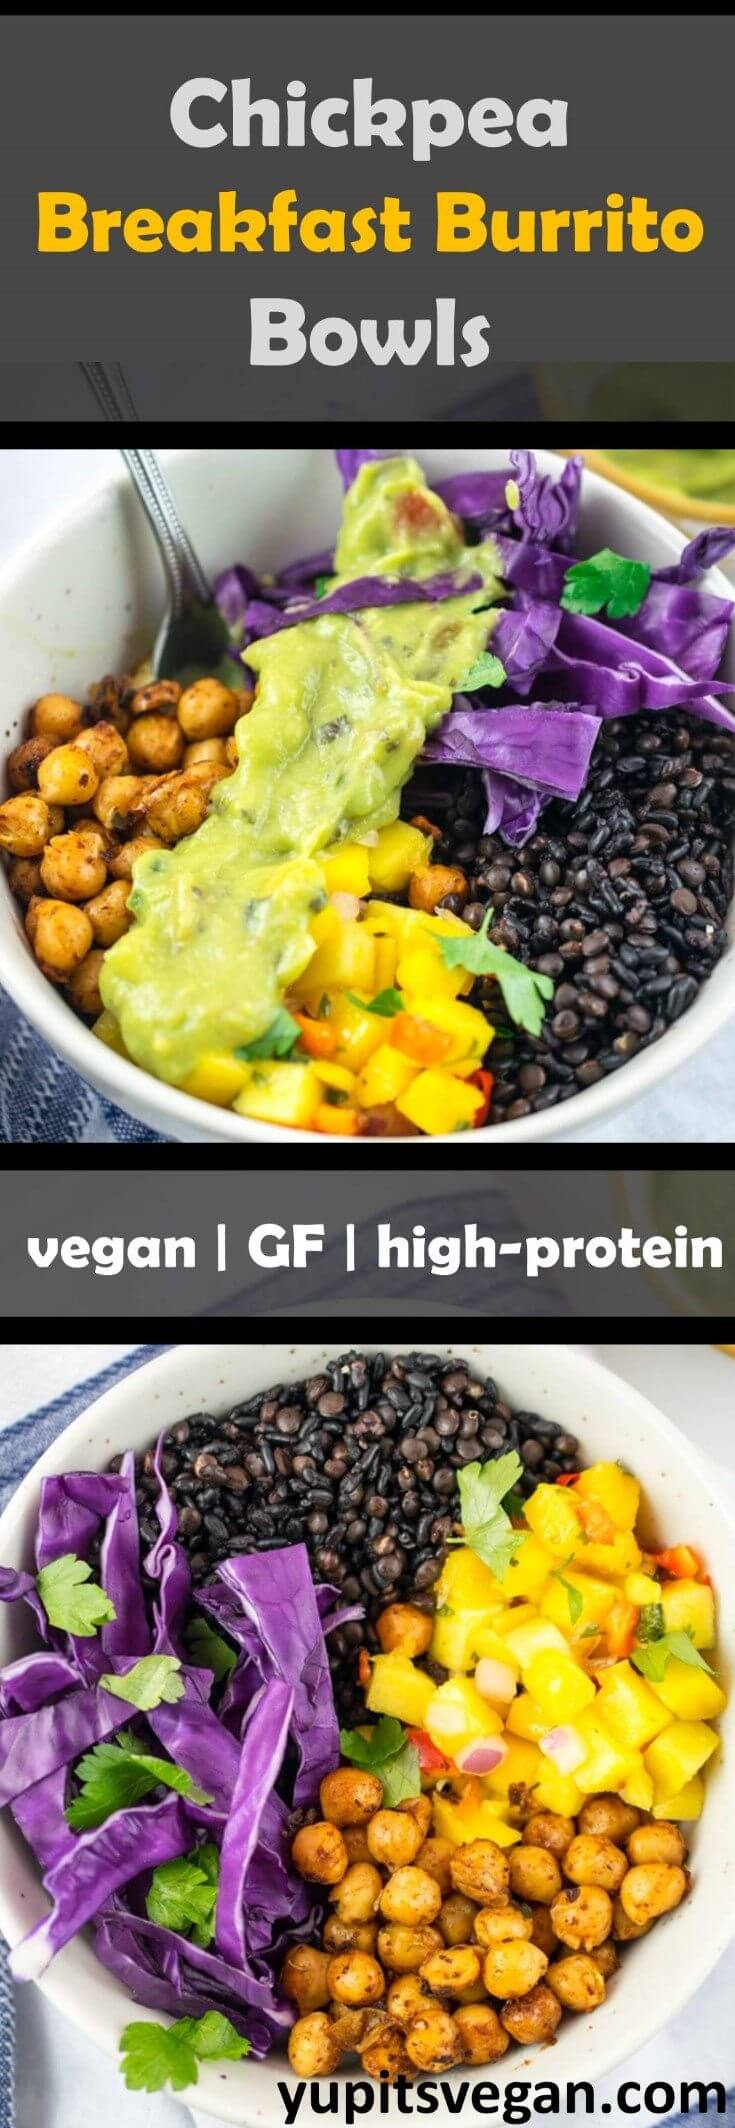 Chickpea Breakfast Burrito Bowls made with spicy pan-fried chickpeas, mango salsa, guacamole, red cabbage, and Village Harvest Organic Antioxidant blend (black rice, black lentils, and black quinoa). Vegan and vegetarian burrito bowls!